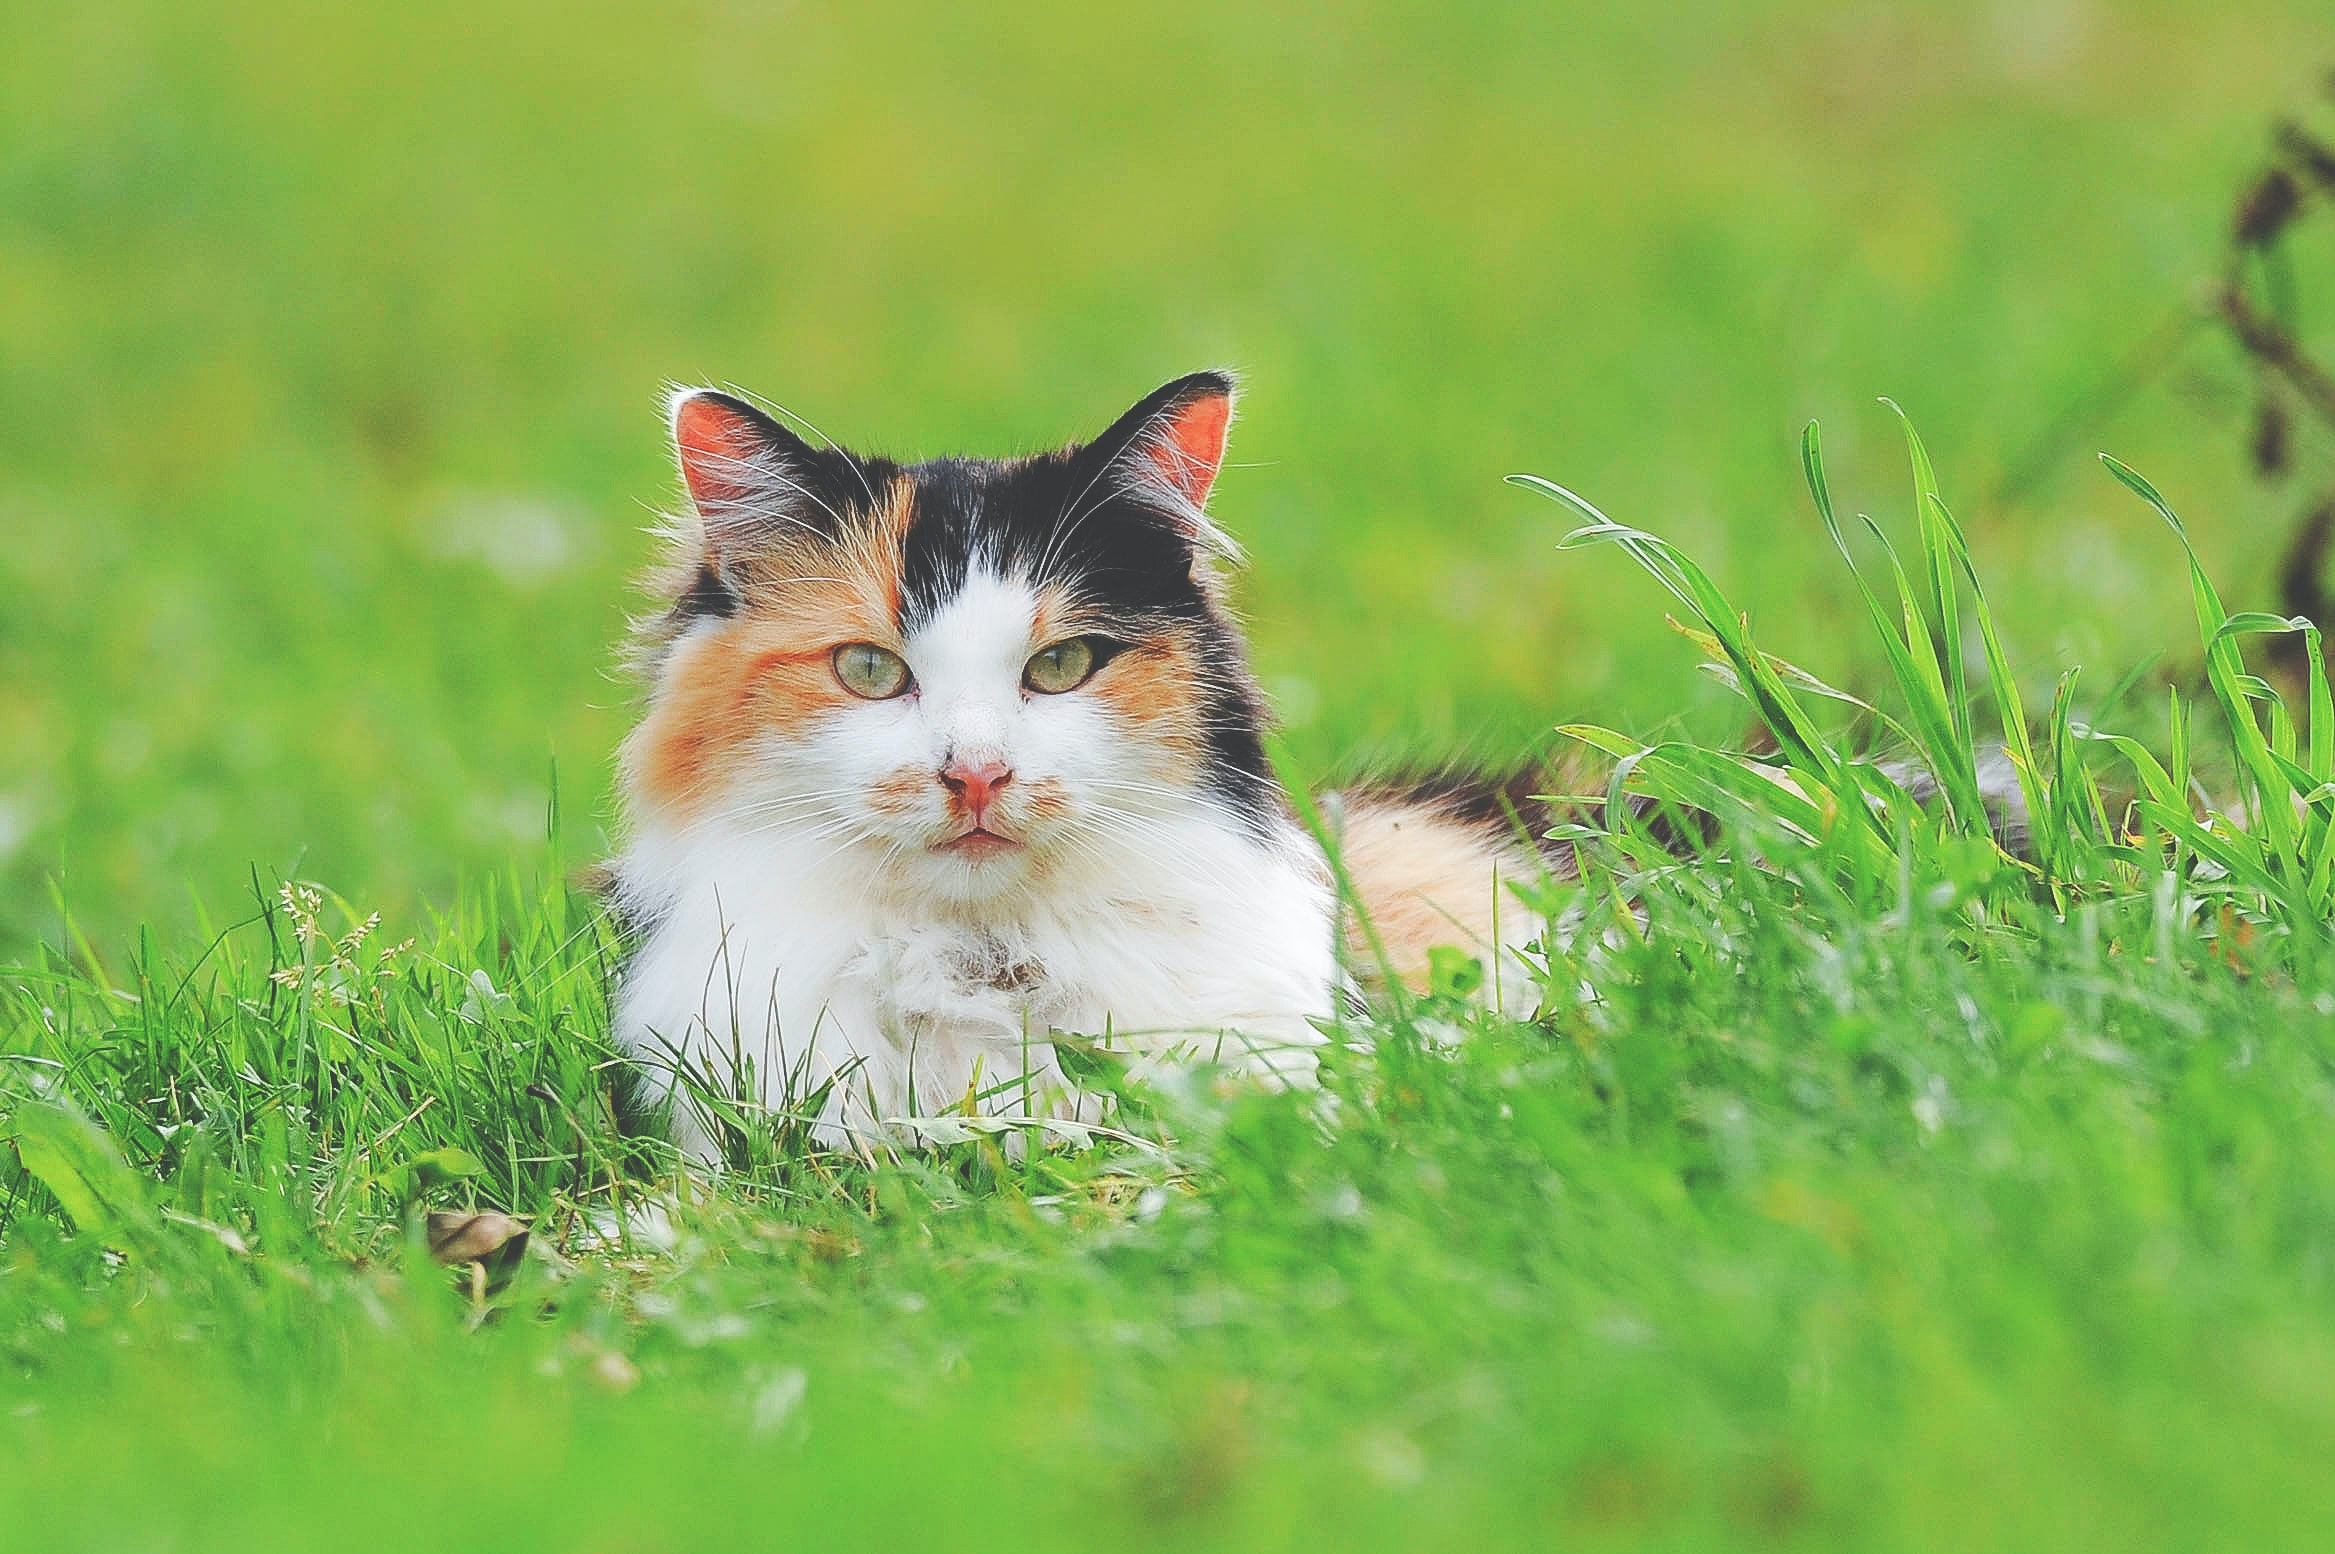 tricolored cat on green lawn grass taken at daytime